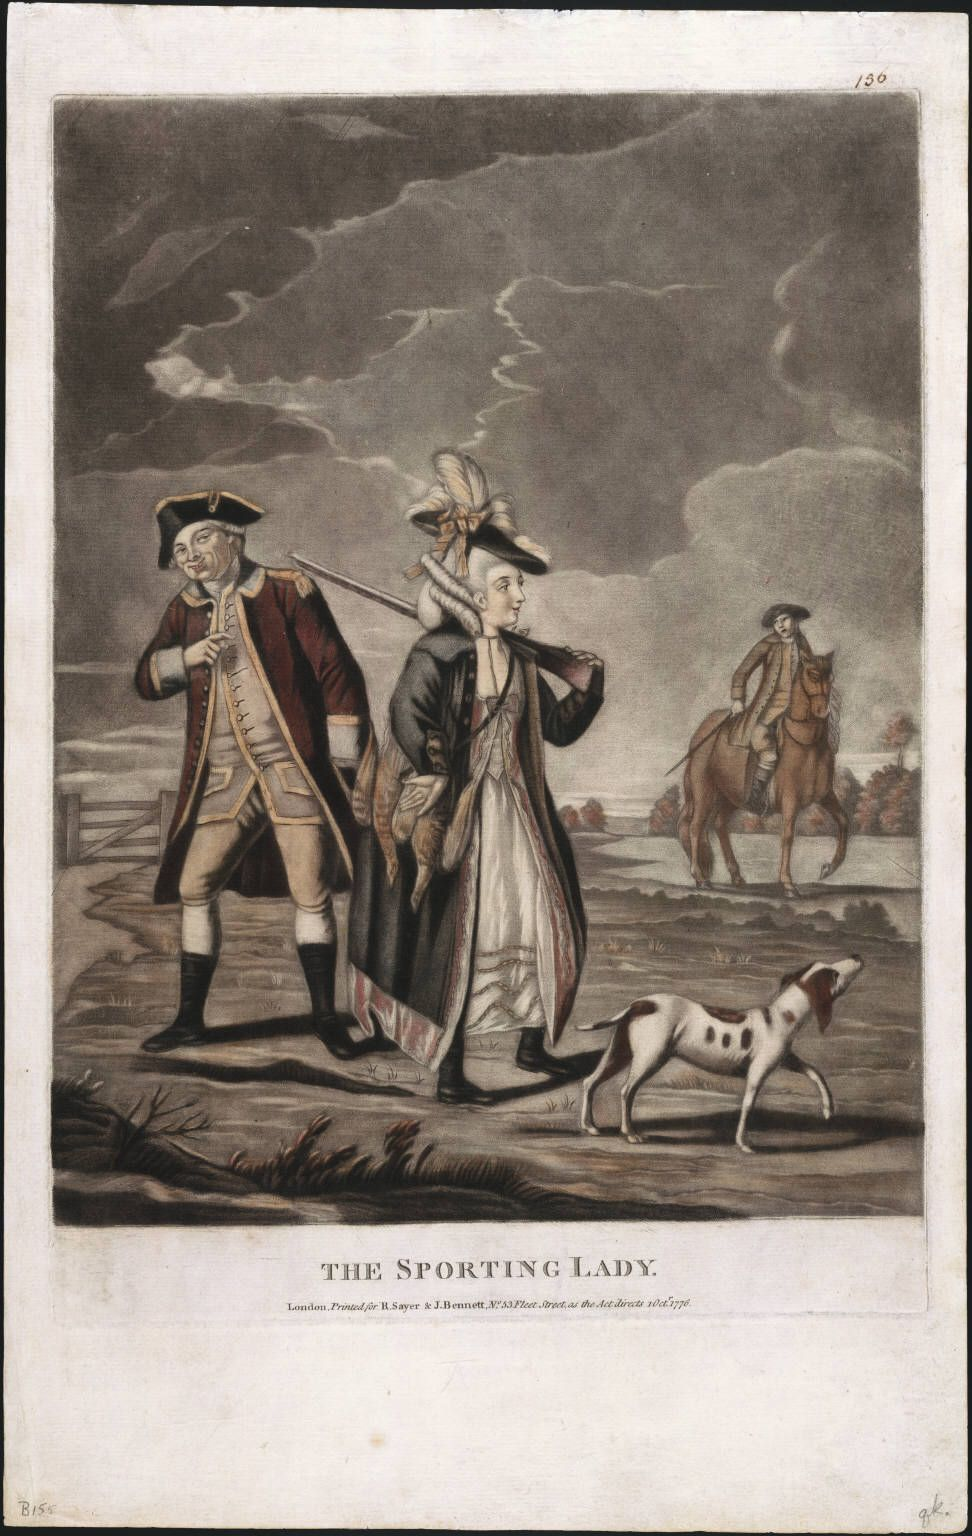 1776  'The Sporting Lady' Lewis Walpole Library Digital Collection images.library.yale.edu